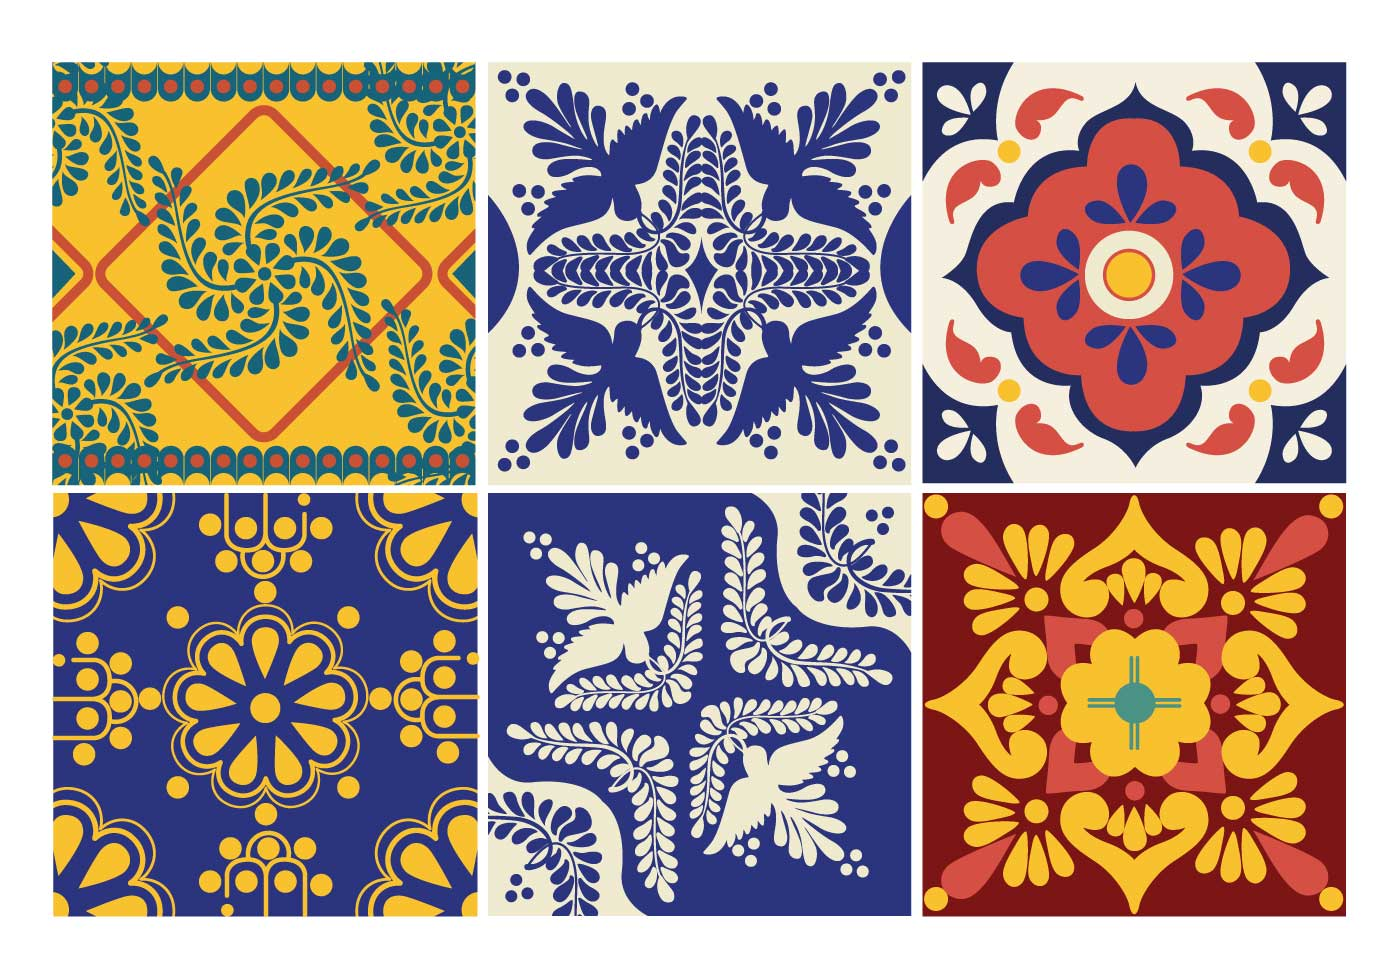 Talavera Free Vector Art 1124 Free Downloads